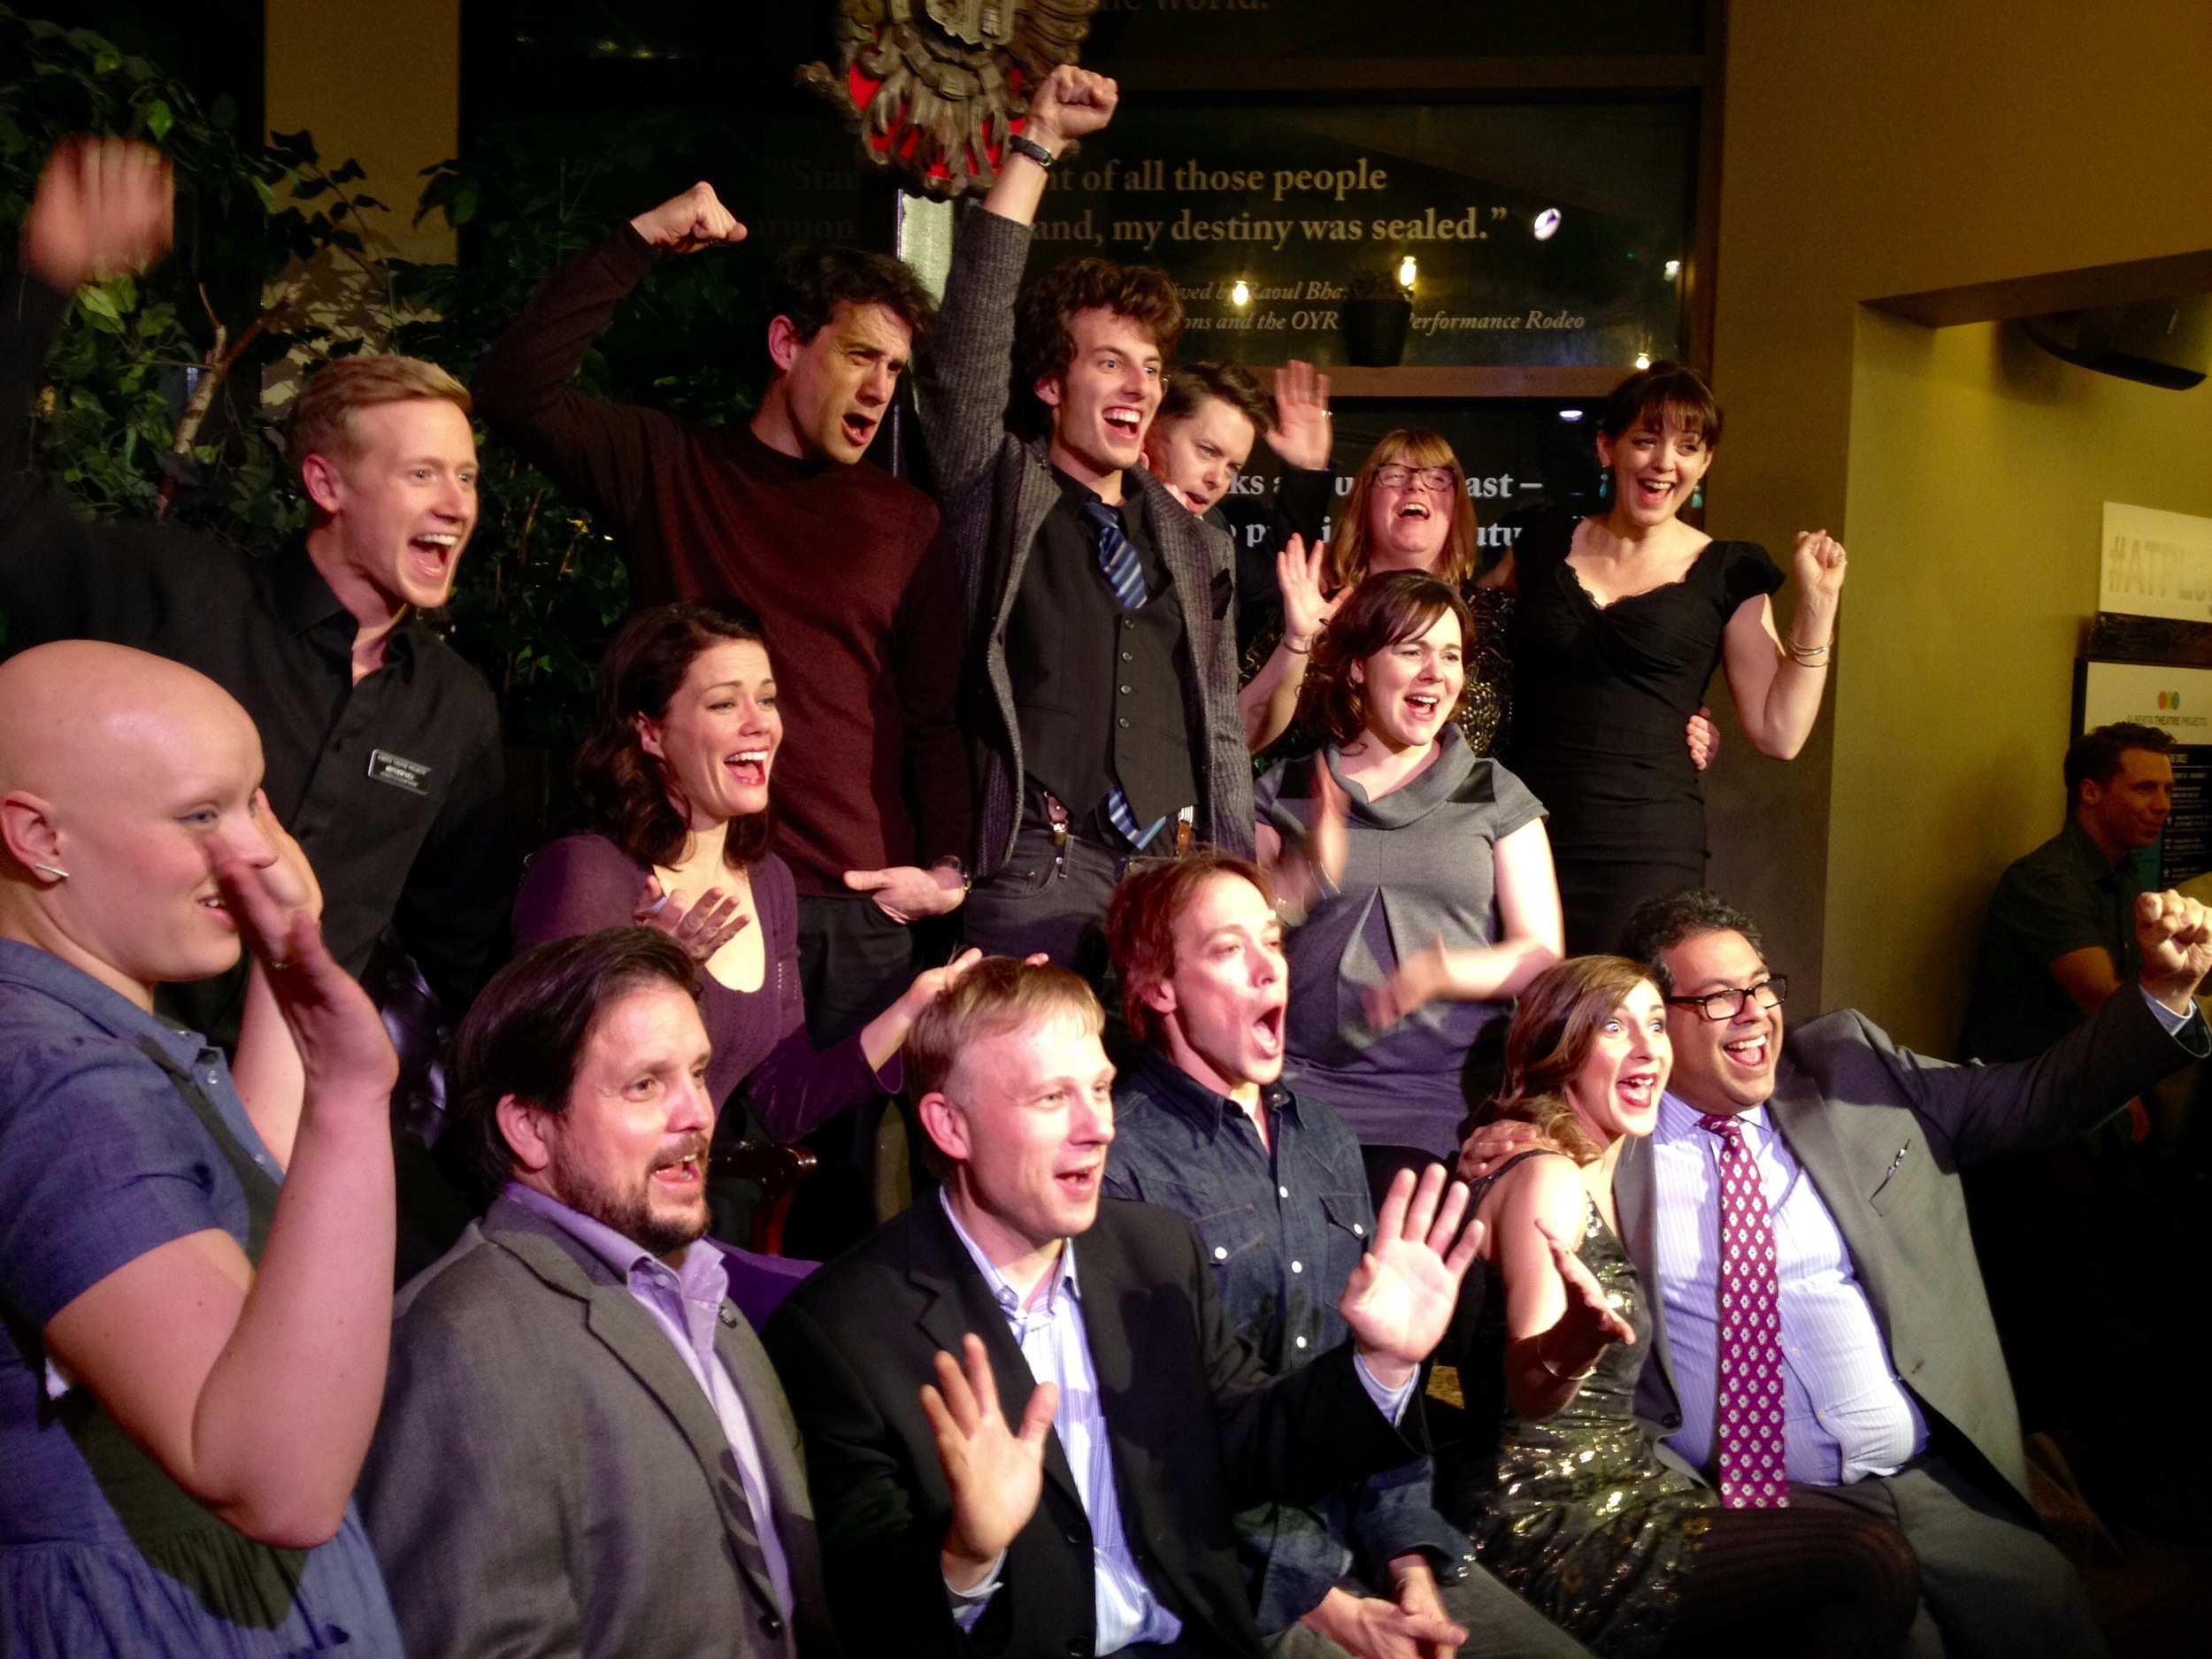 The cast and creative team of  Legend Has It  celebrates during opening night. can you spot their special guest, Mayor Nenshi? Hint: He's in the front row on the far right!